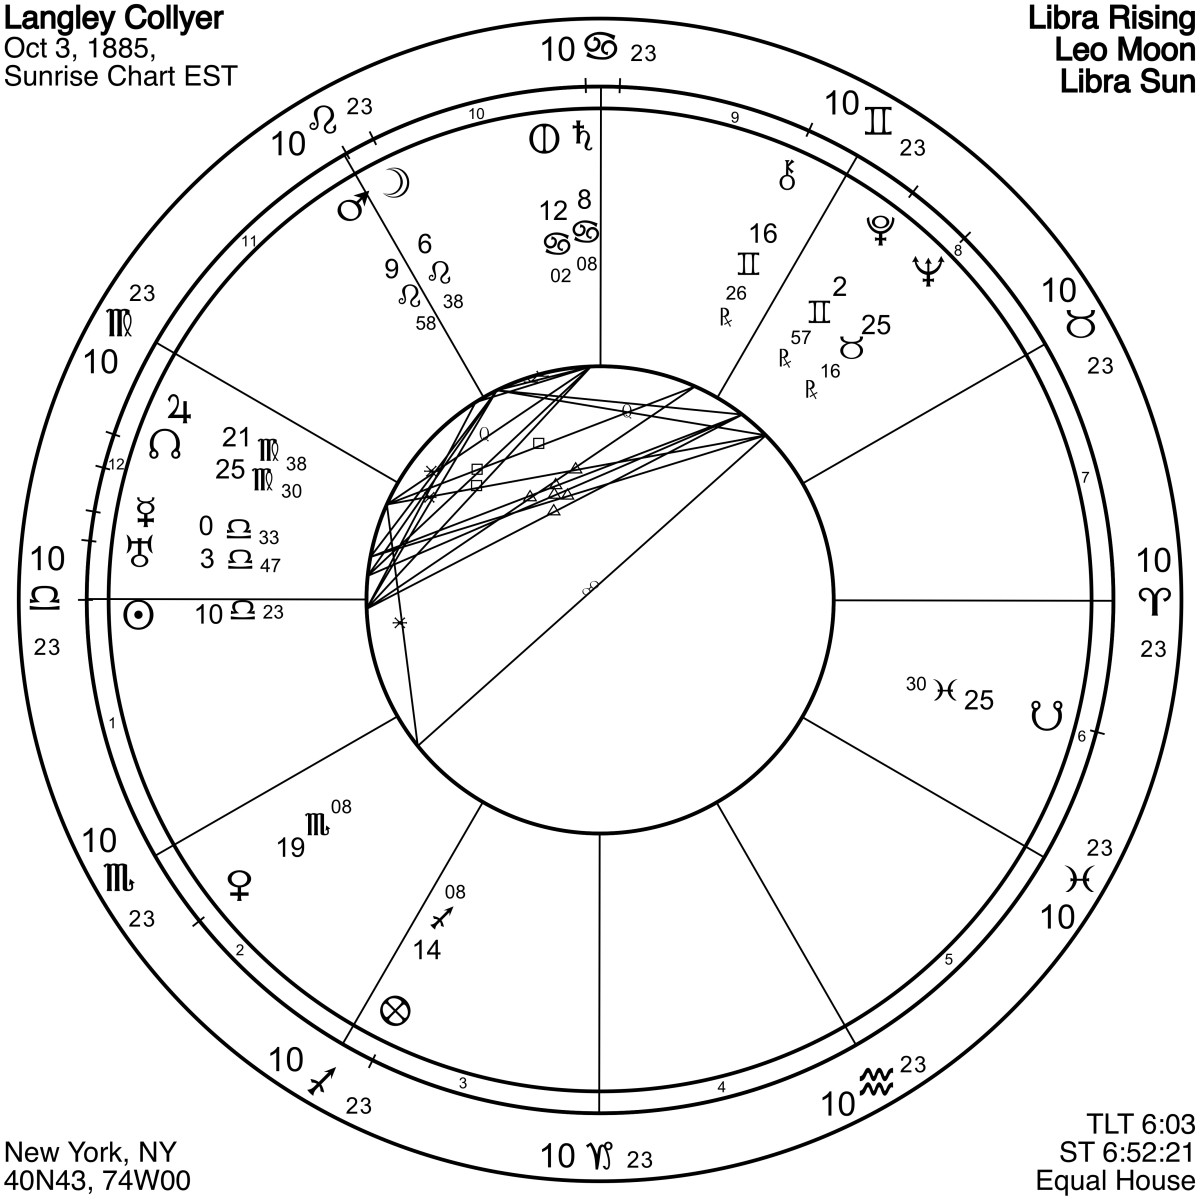 "Langley Collyer's chart, like his brother's, is very one-sided or focused. In Langley's case, focus morphed into obsession. Notice the hyperactive Moon-Mars conjunction (at the 11 o'clock position) commanding the ""attention"" of all other planets."